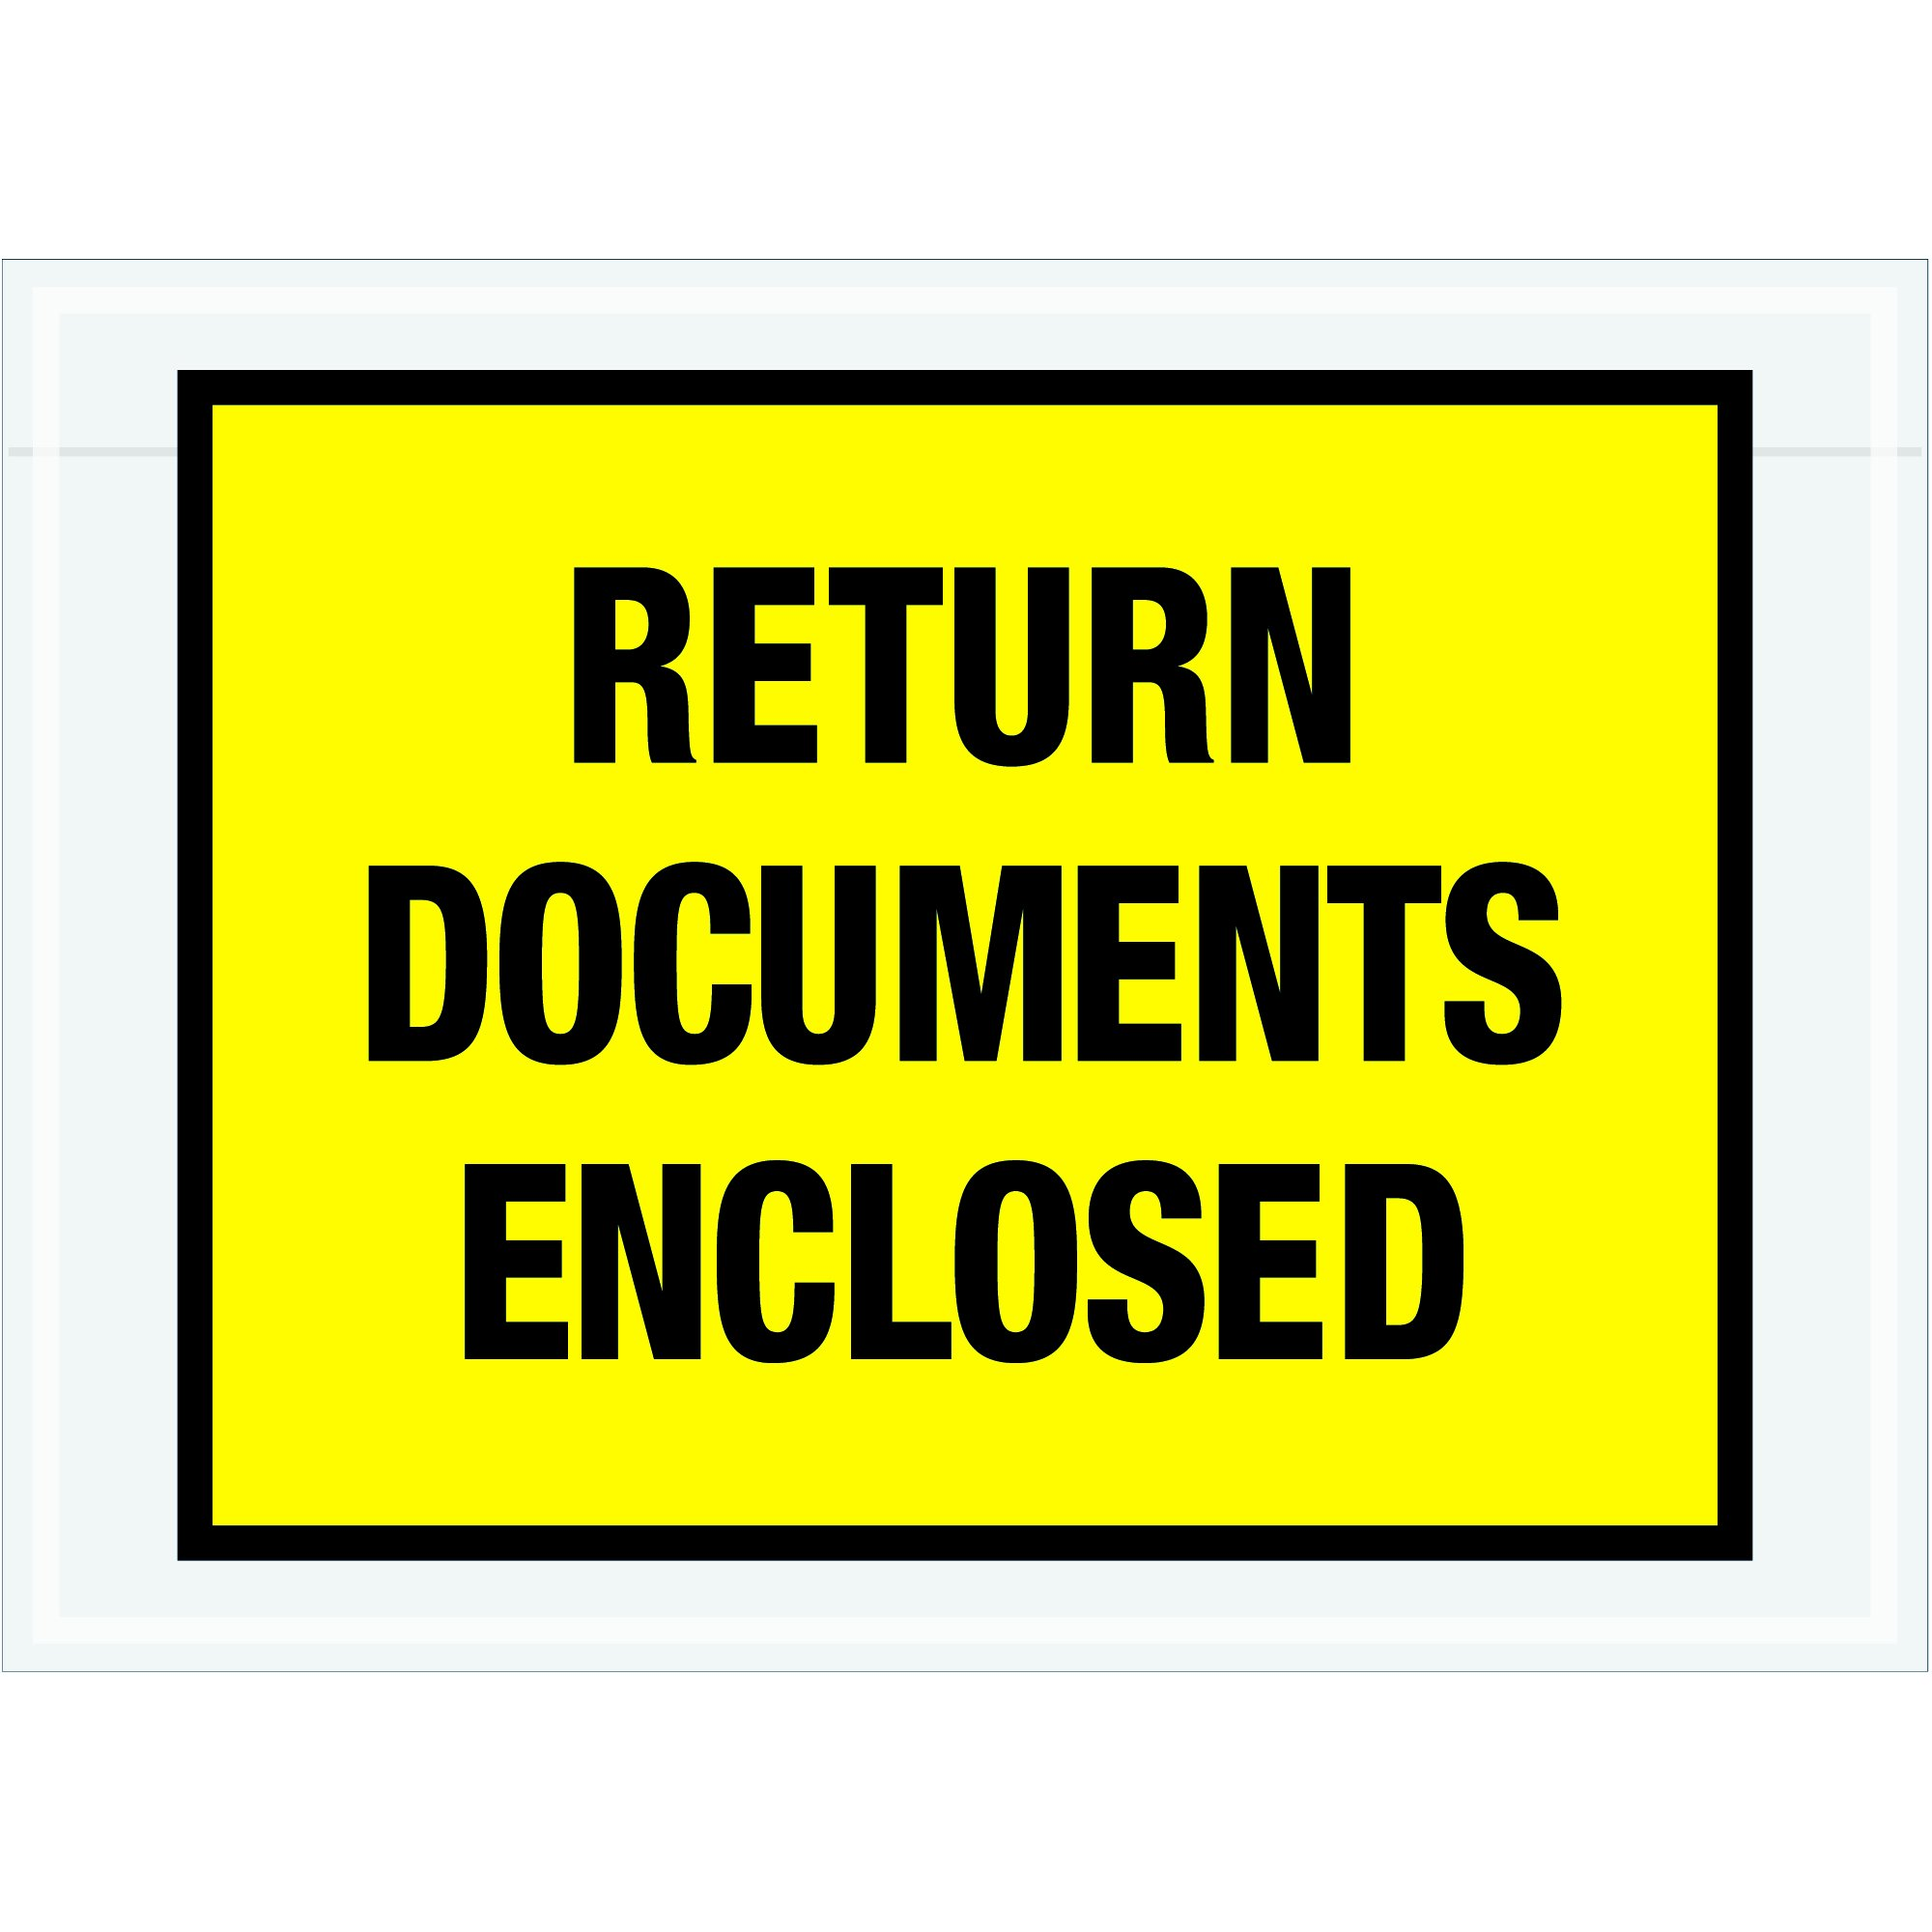 Tape Logic TLPL448''Return Documents Enclosed'' Envelopes, 7 1/2'' x 5 1/2'', Yellow (Pack of 1000) by Tape Logic